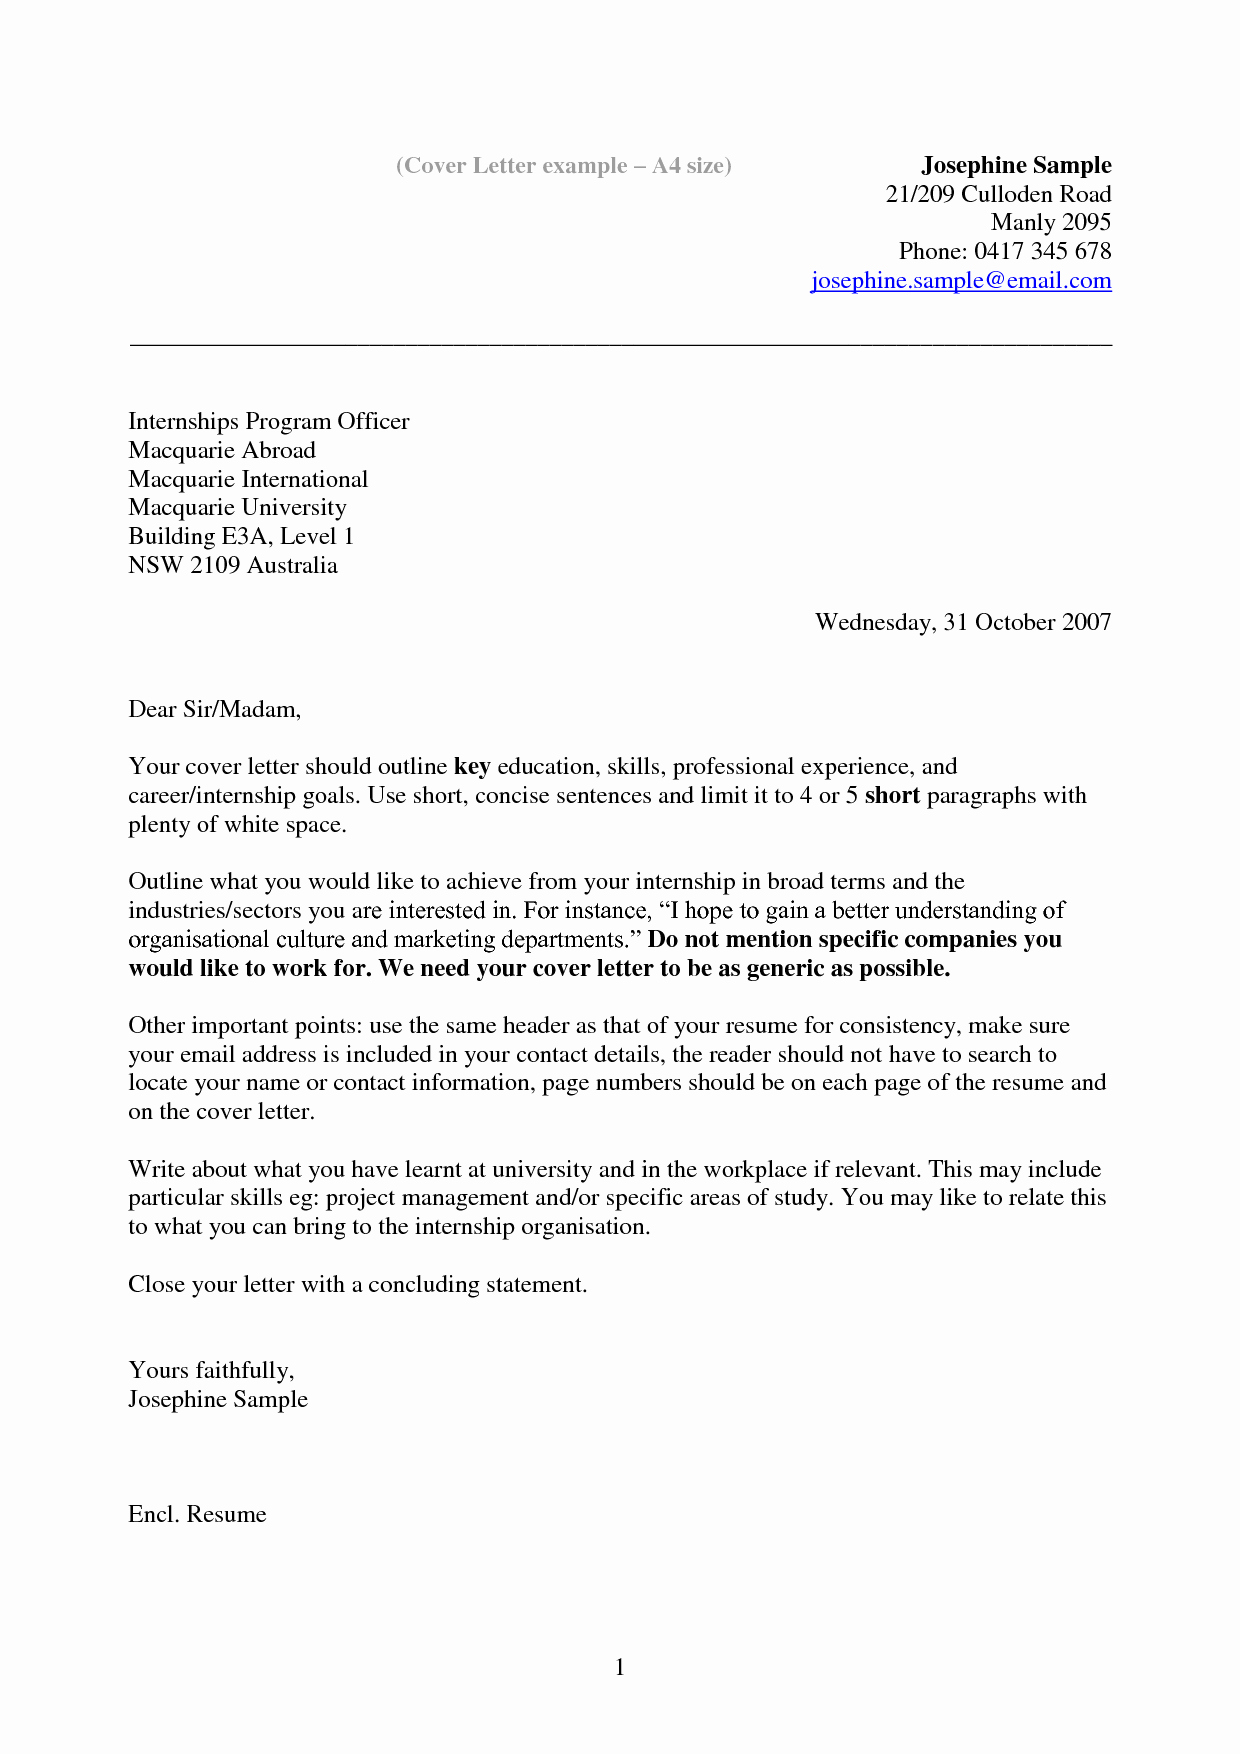 Statement Of Facts Sample Letter Inspirational Resume Cover Letter Examples